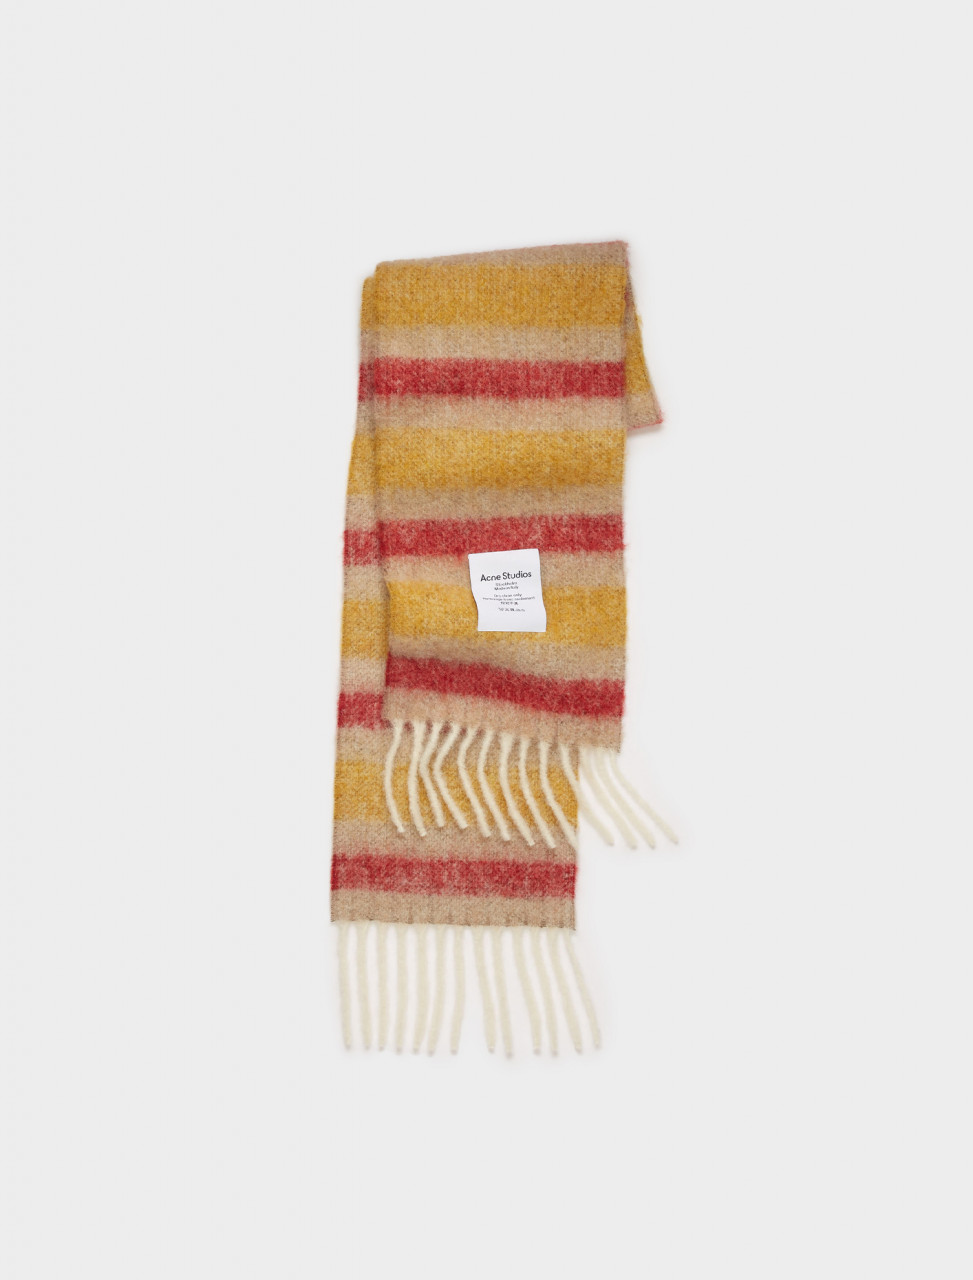 110-CA0096-CIH ACNE STUDIOS STRIPED SCARF IN BEIGE RED YELLOW